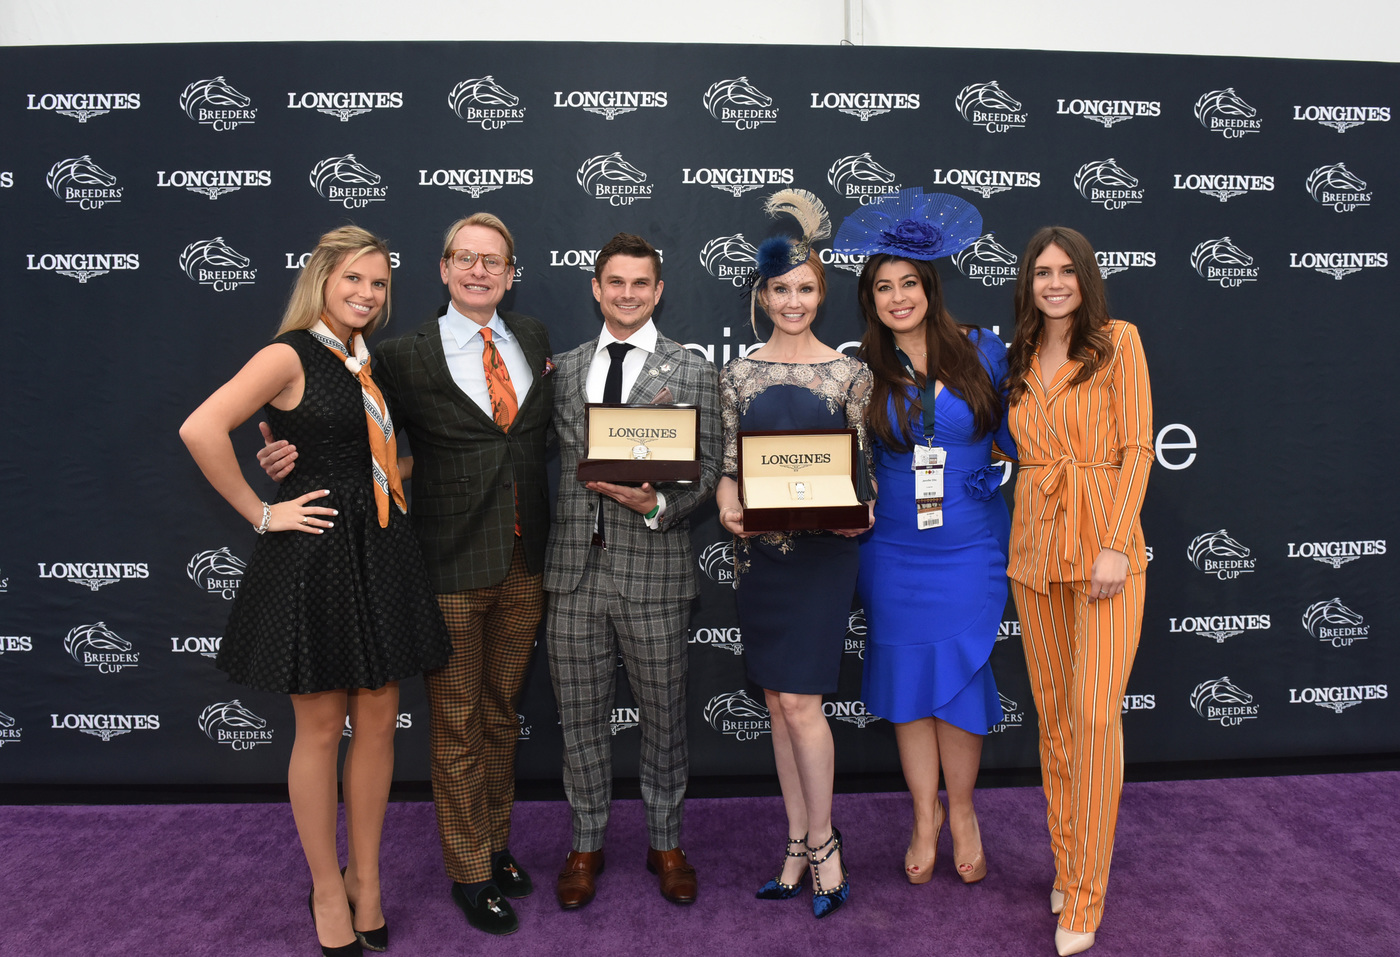 Longines Flat Racing Event: Longines proudly times 2018 Breeders' Cup World Championships in Louisville 11